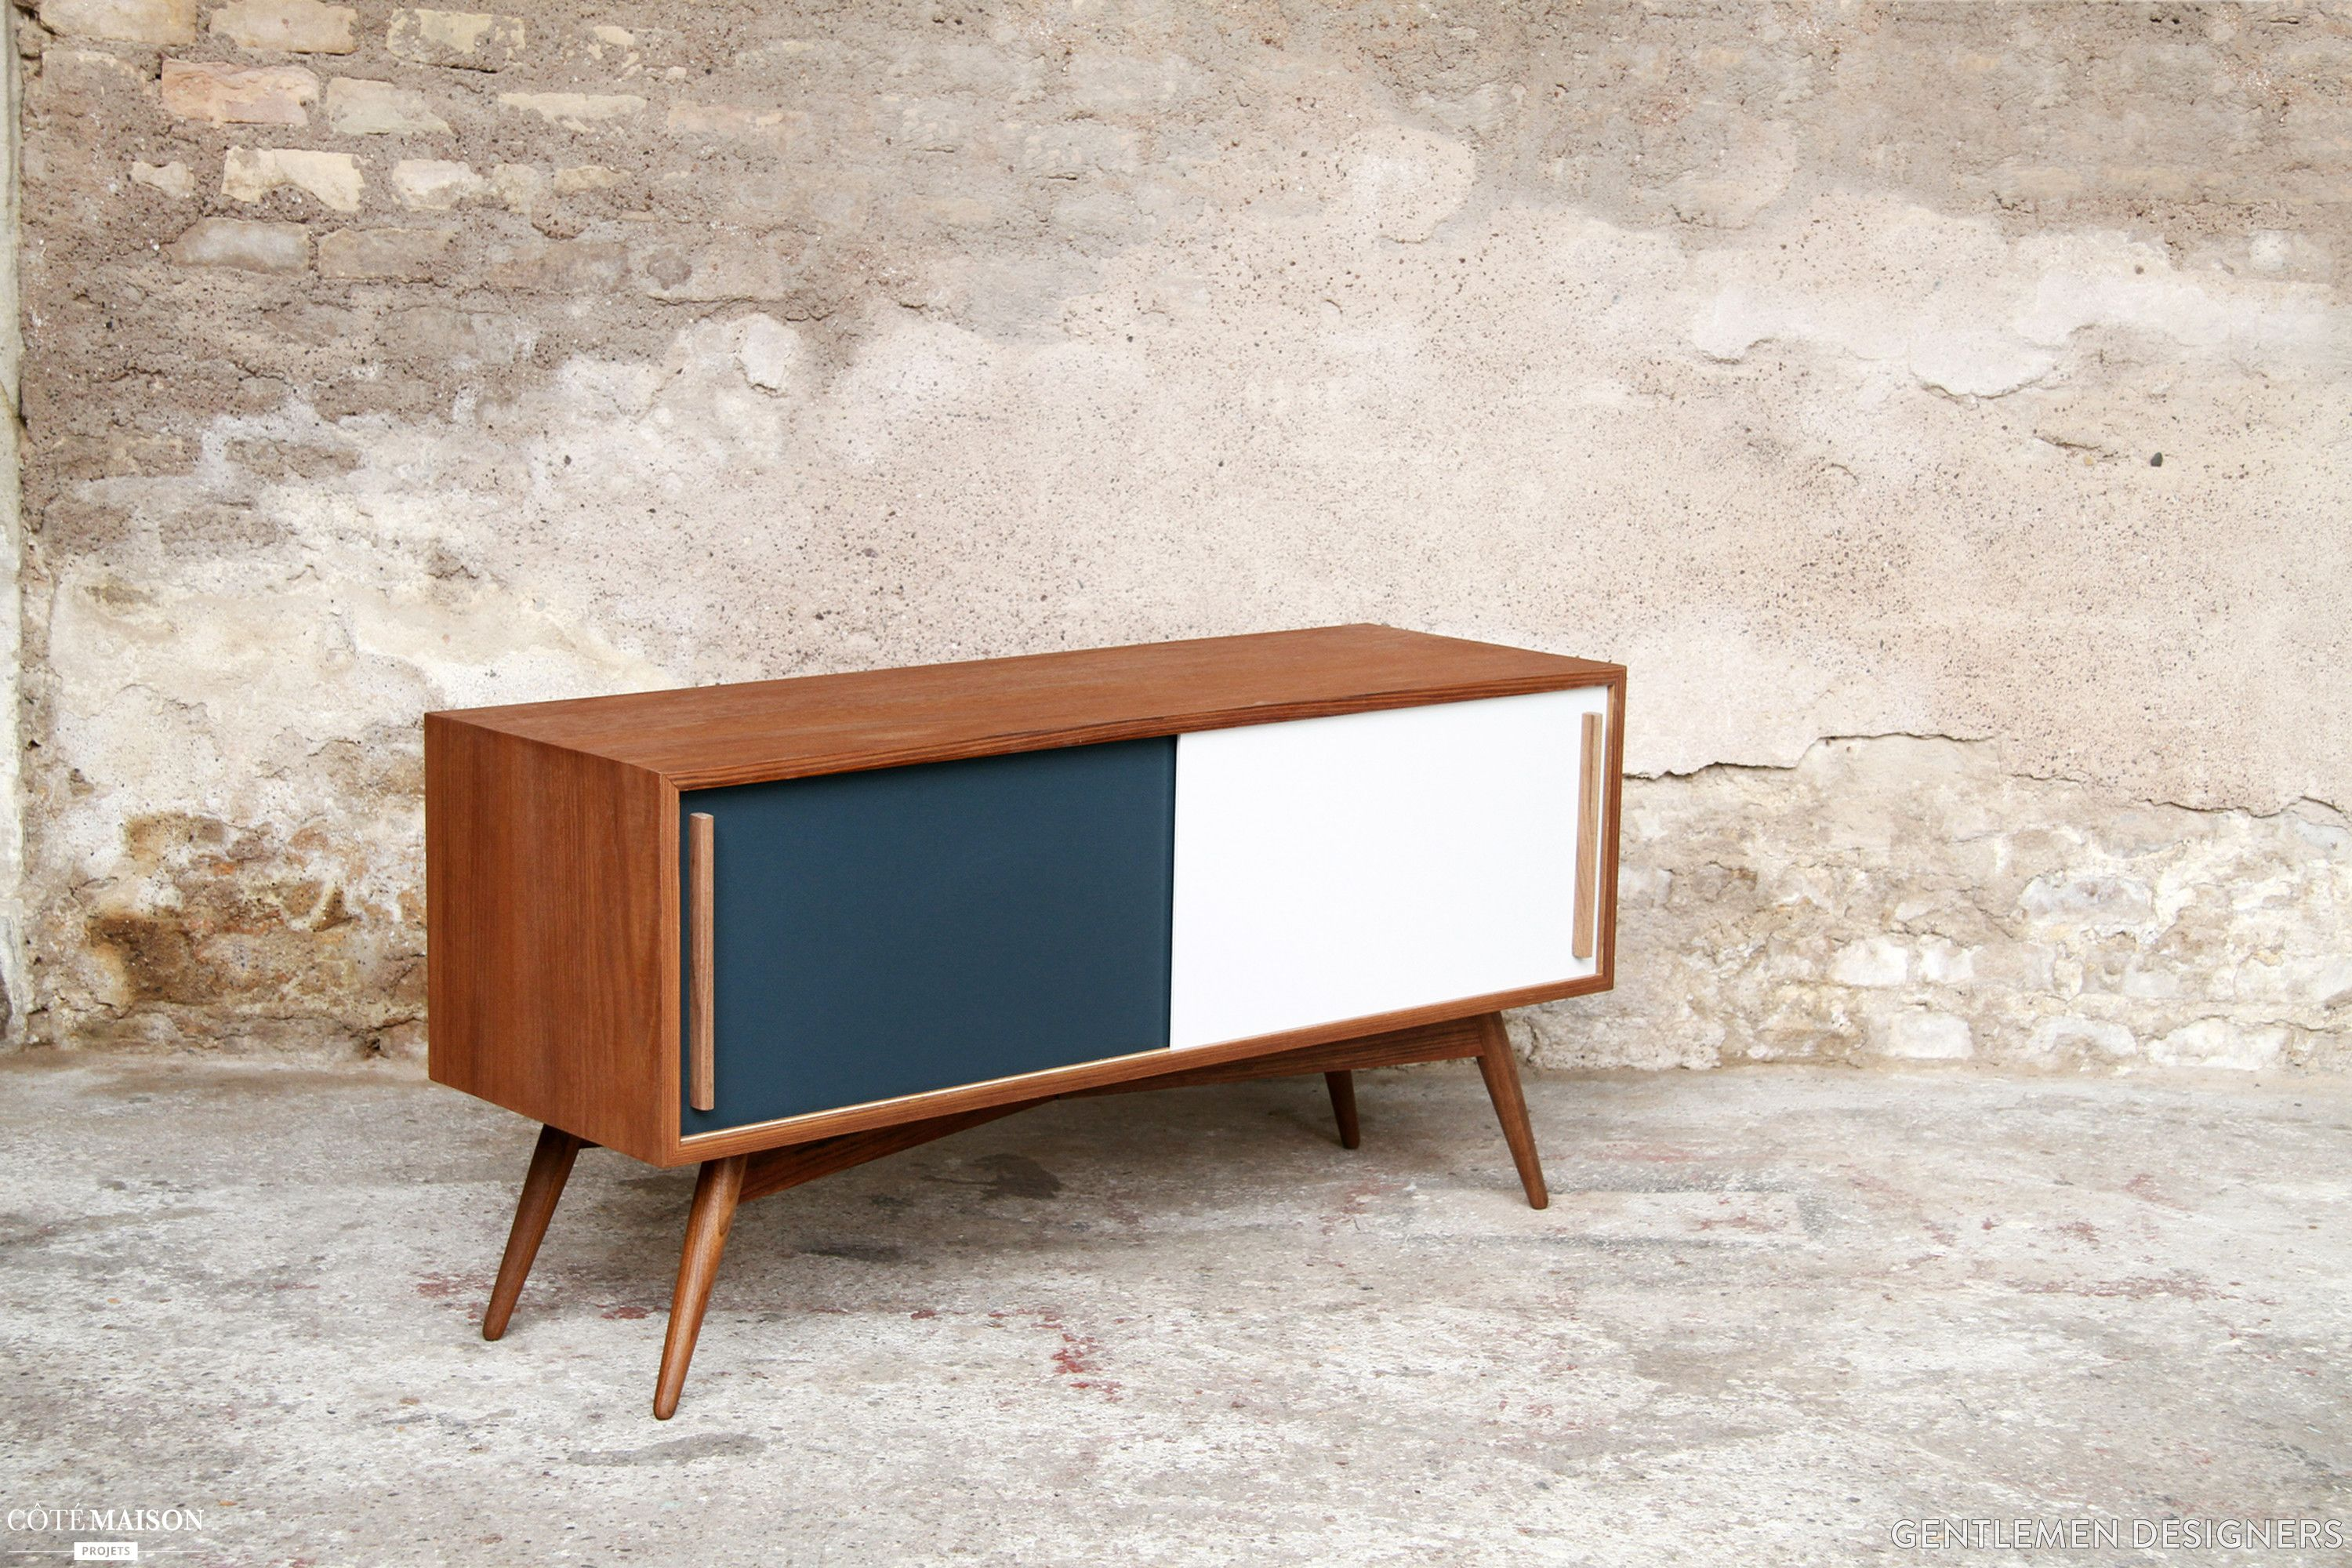 Meuble Tv Made In Design Teak Furniture Tv Hifi Tailor Made In France Gentlemen Designers